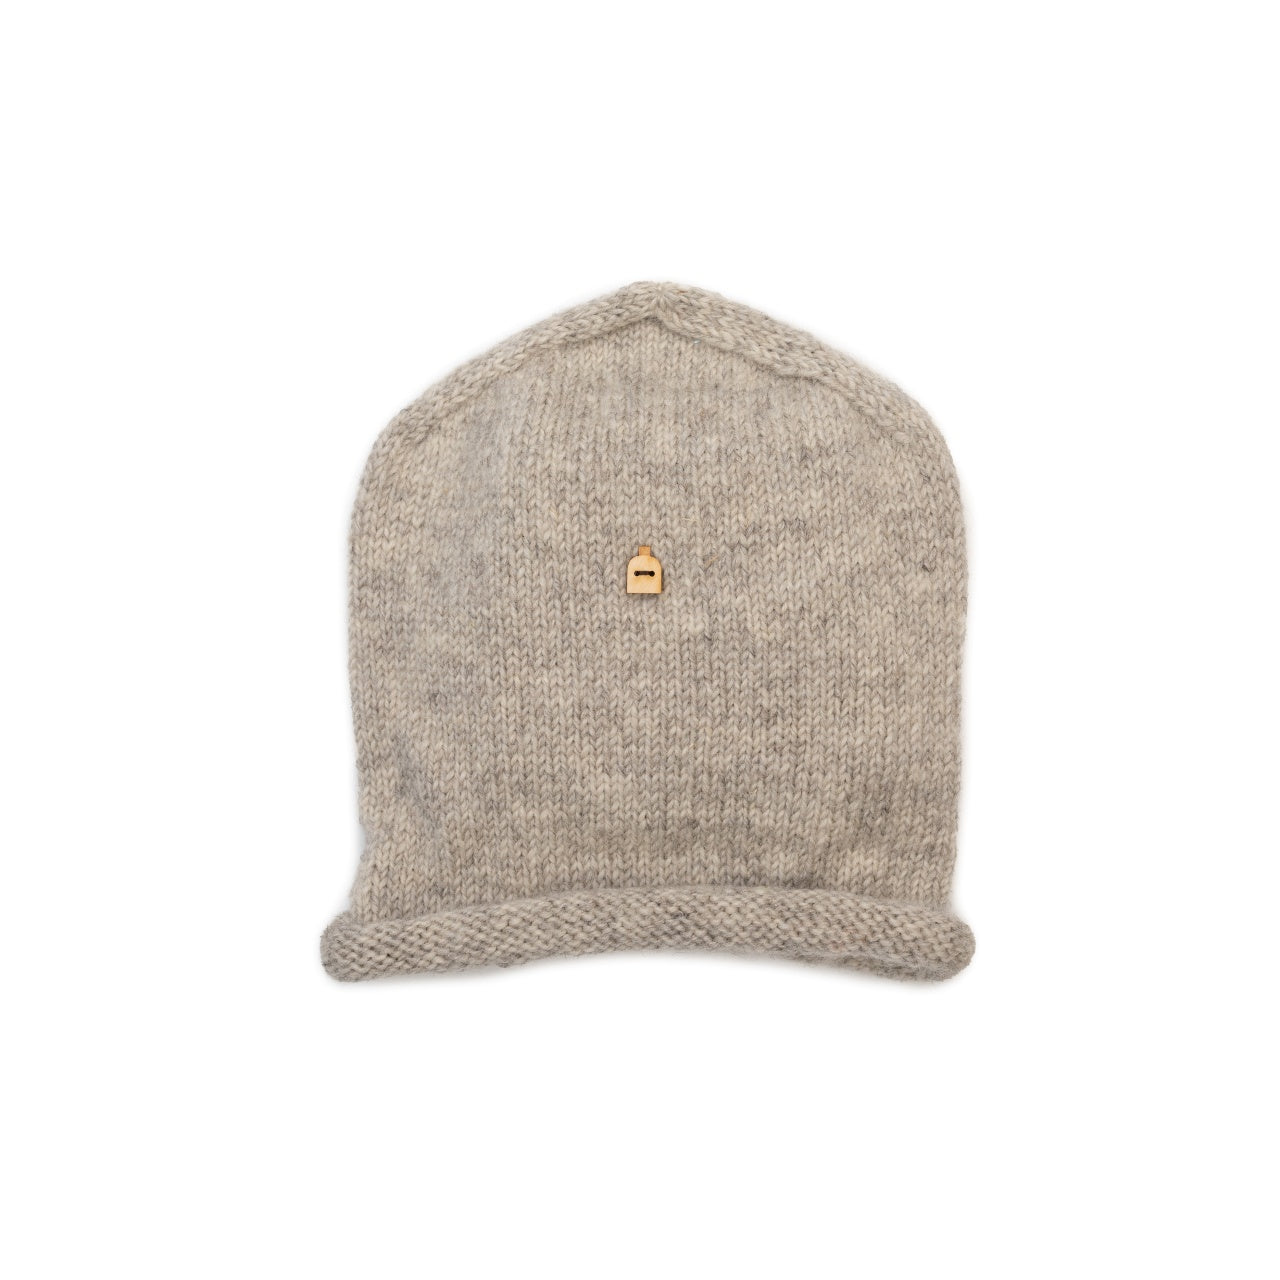 Jäkälä Country Casual Beanie